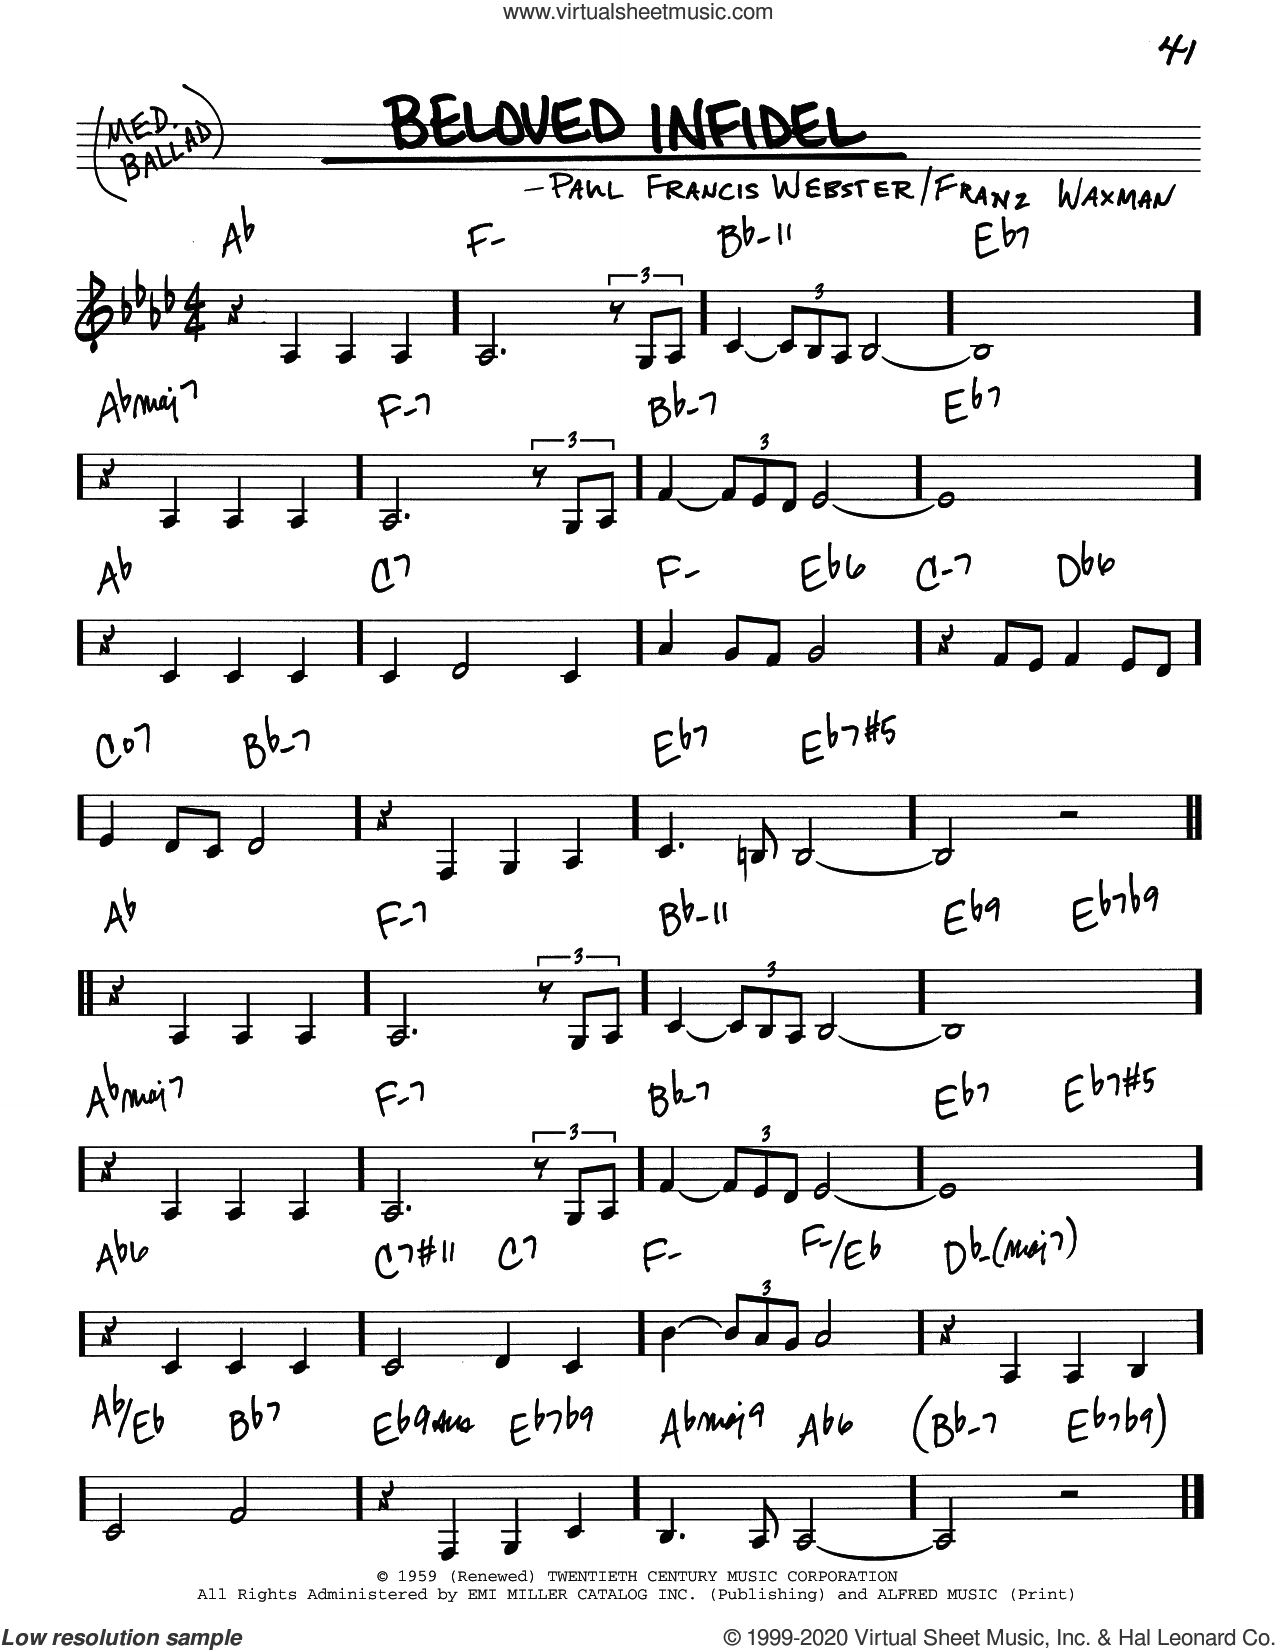 Beloved Infidel sheet music for voice and other instruments (real book) by Paul Francis Webster and Franz Waxman, intermediate skill level